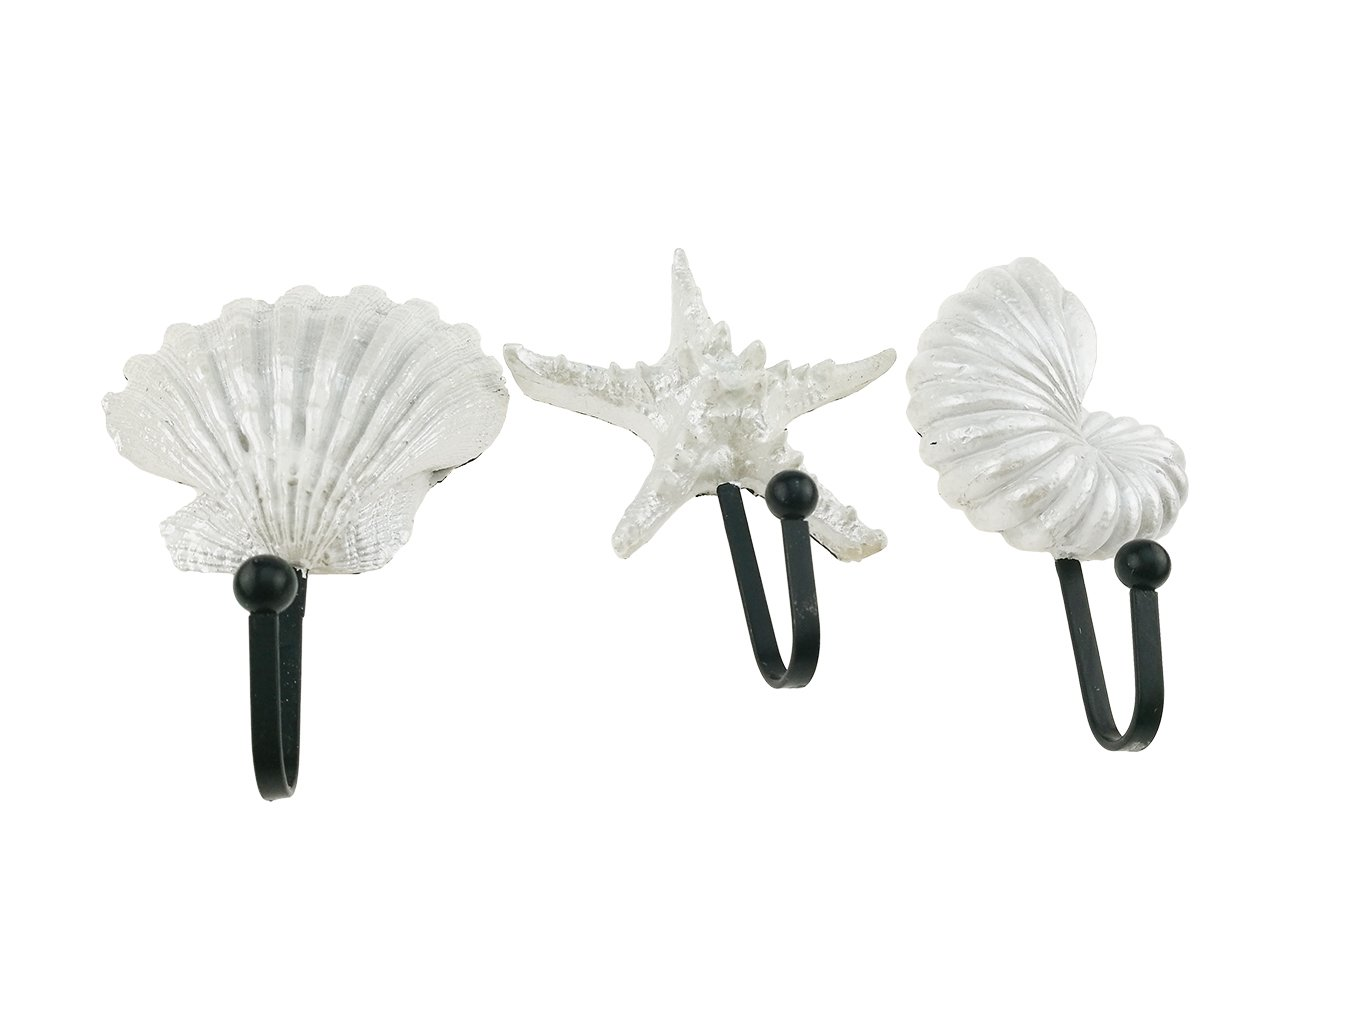 1 Set 3Pcs Mediterranean Style Cast Iron Asteroidea Scallop Seashell Hooks Wall Hook Seaside Iron Wall Hanger Decorative Hooks for Hanging Coats Housewarming Gift Home Decor